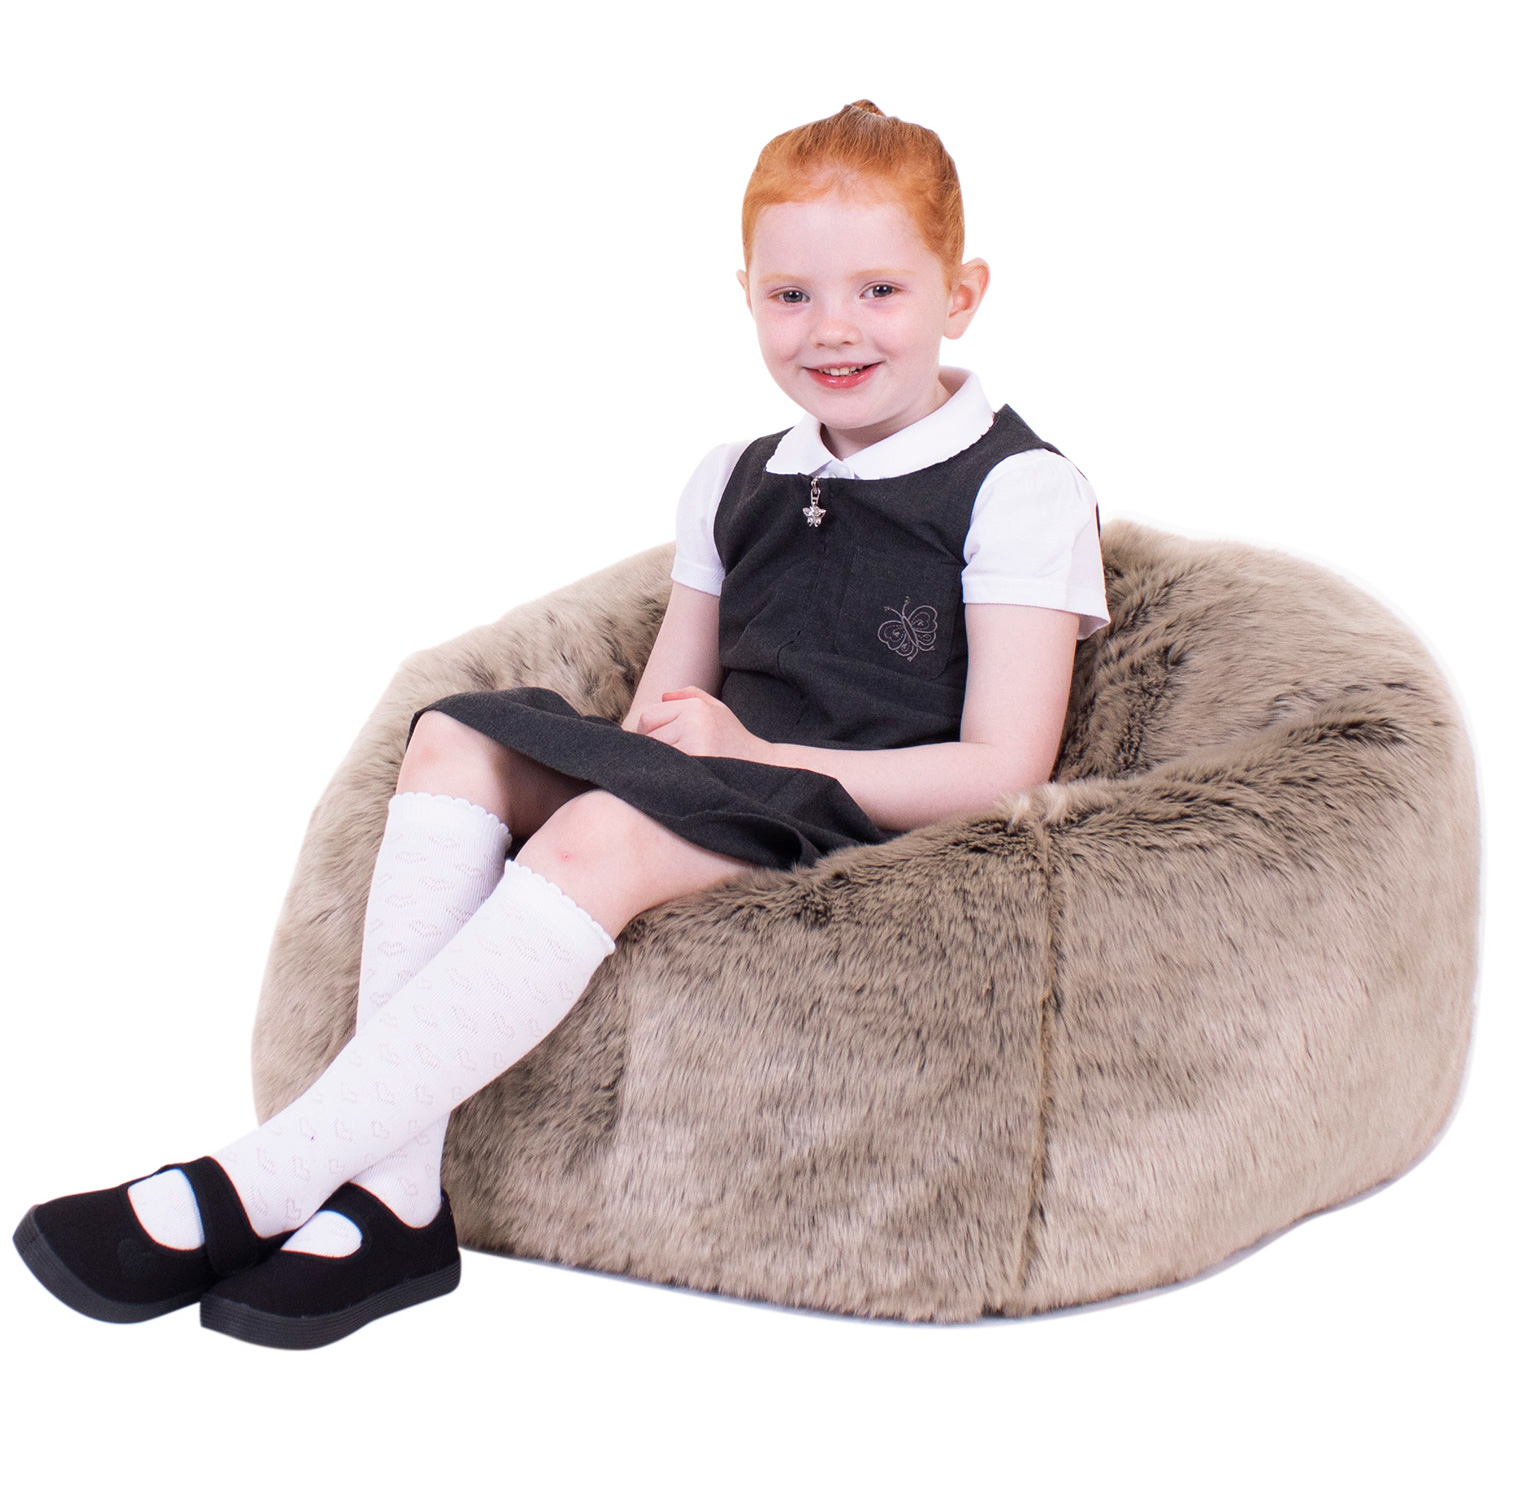 Eden-Primary-Bean-Bag-Faux-Fur-M-1-300dpi.jpg